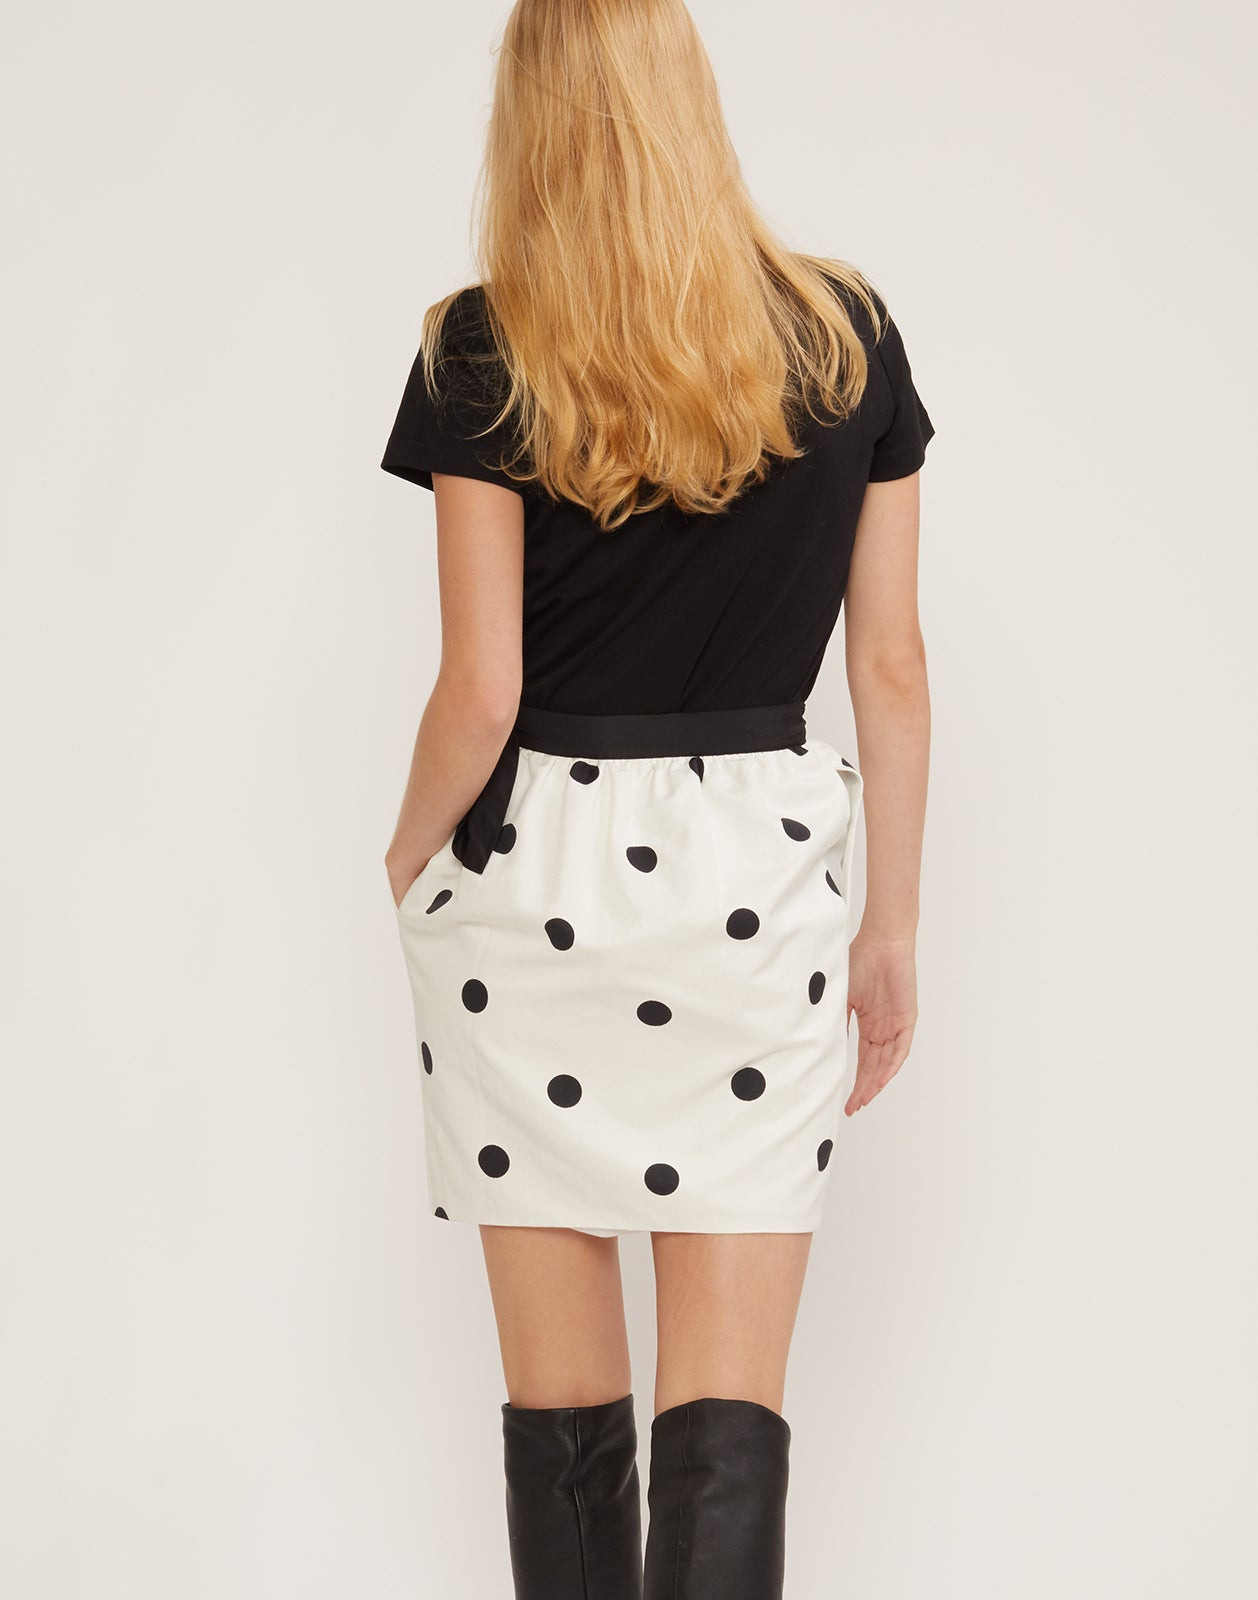 Back view of model in the black and white polka dot print Emery skirt.